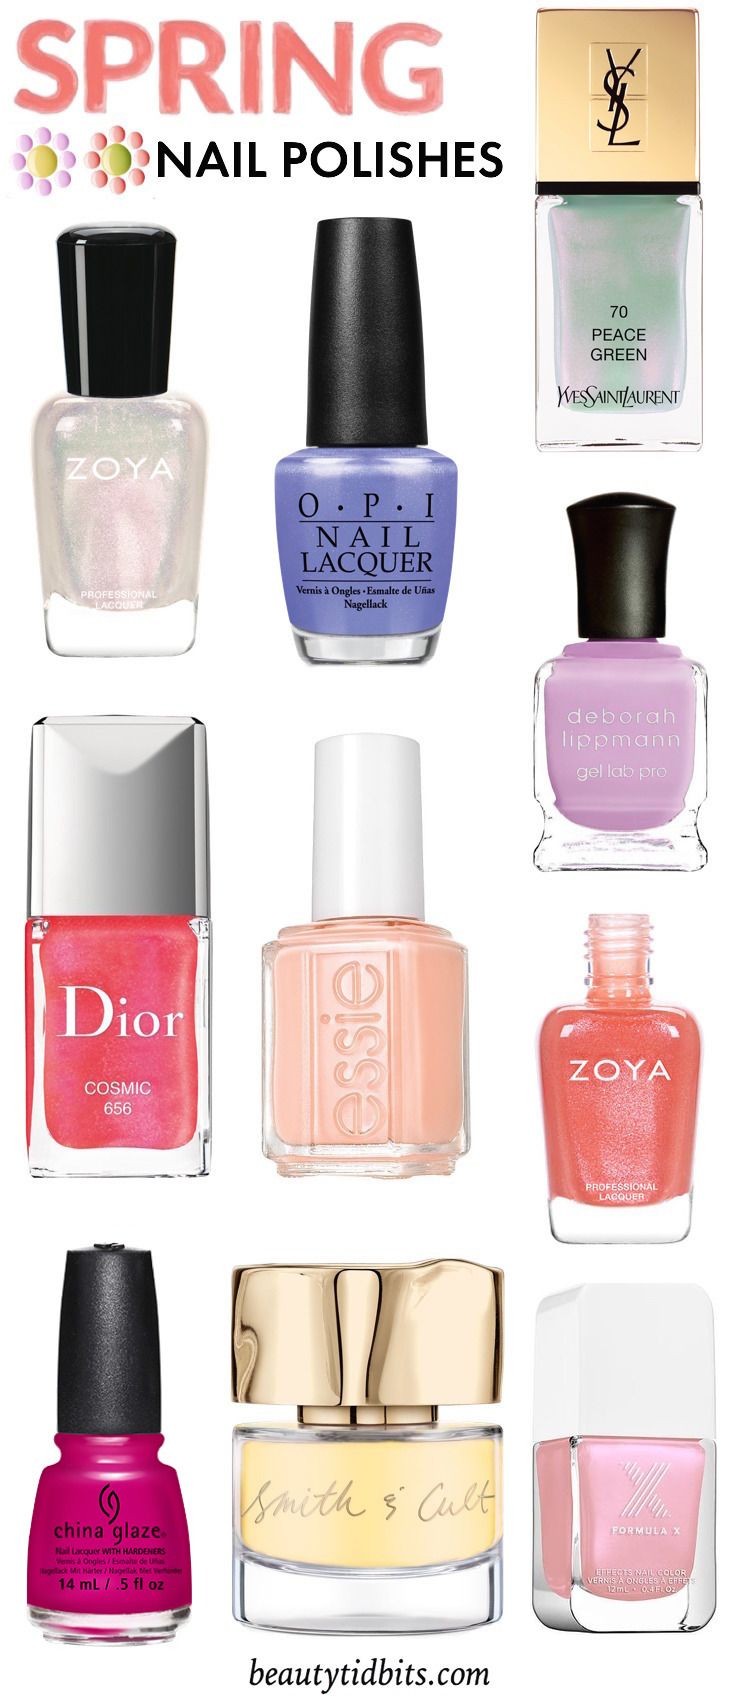 Game nail color workshop - Beat The Winter Blues With These Hot Spring Nail Colors